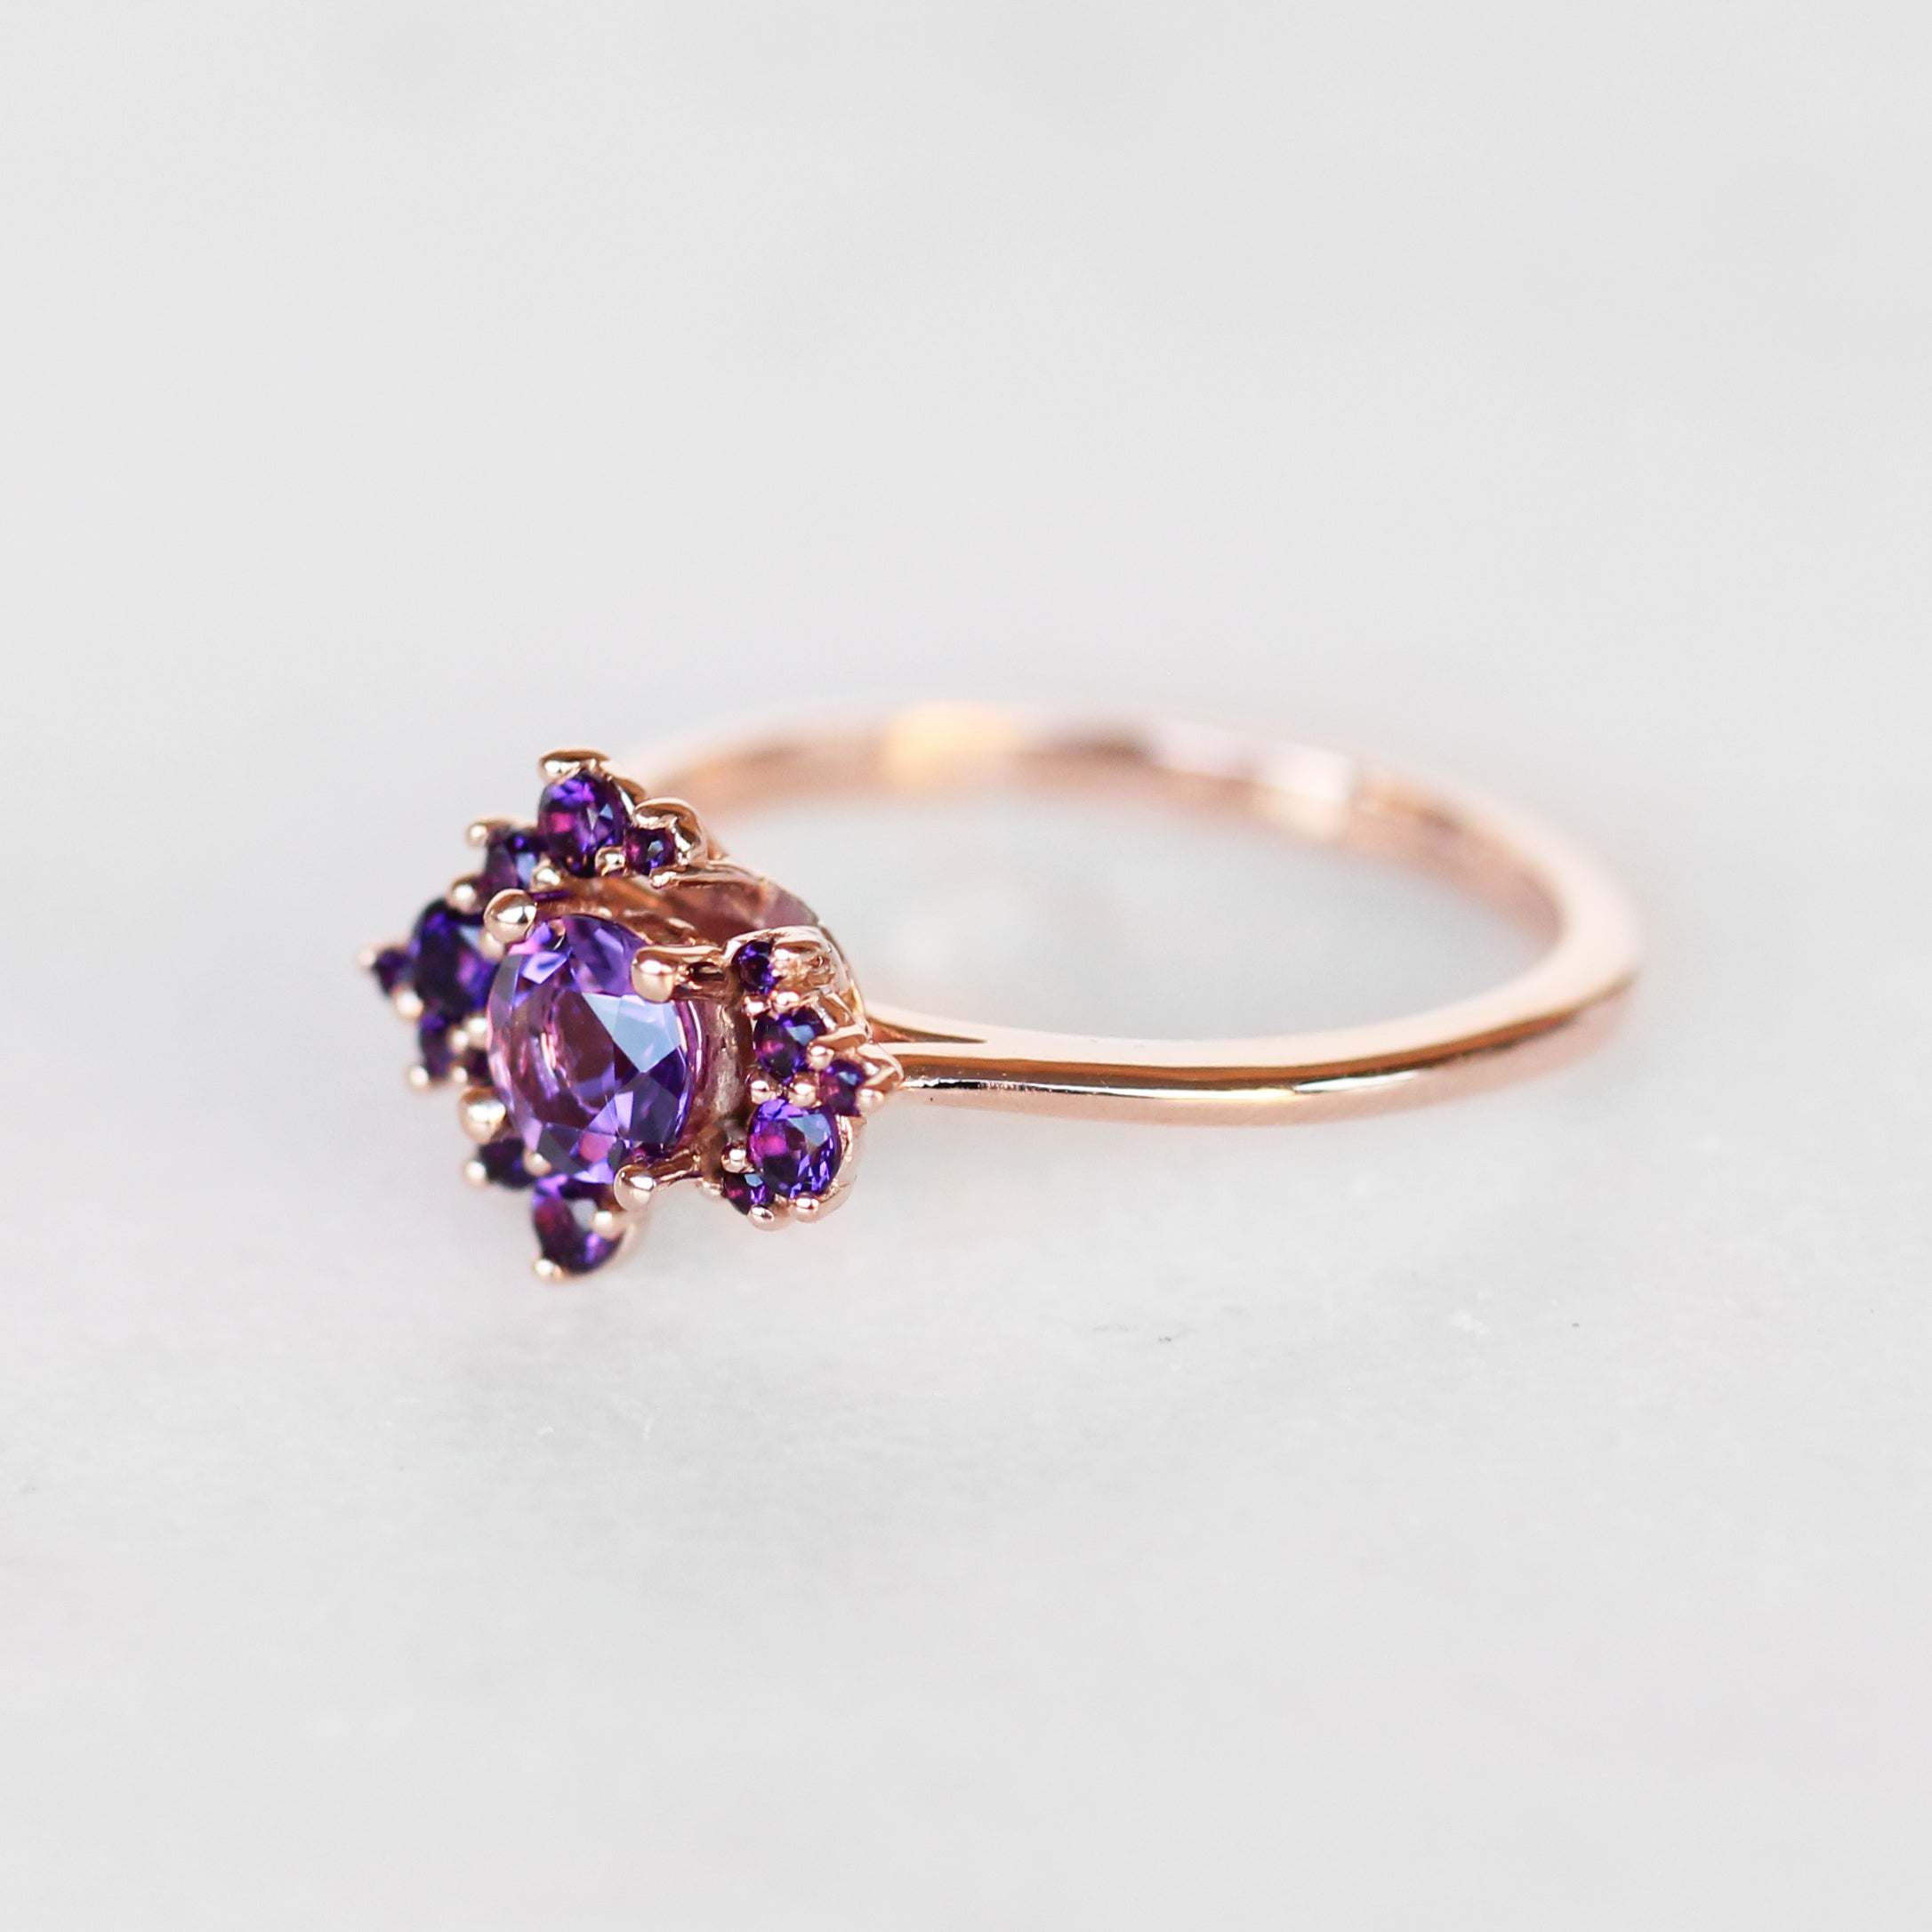 Orion Ring in all Amethyst in 10k Rose Gold - Ready to Size and Ship - Celestial Diamonds ® by Midwinter Co.